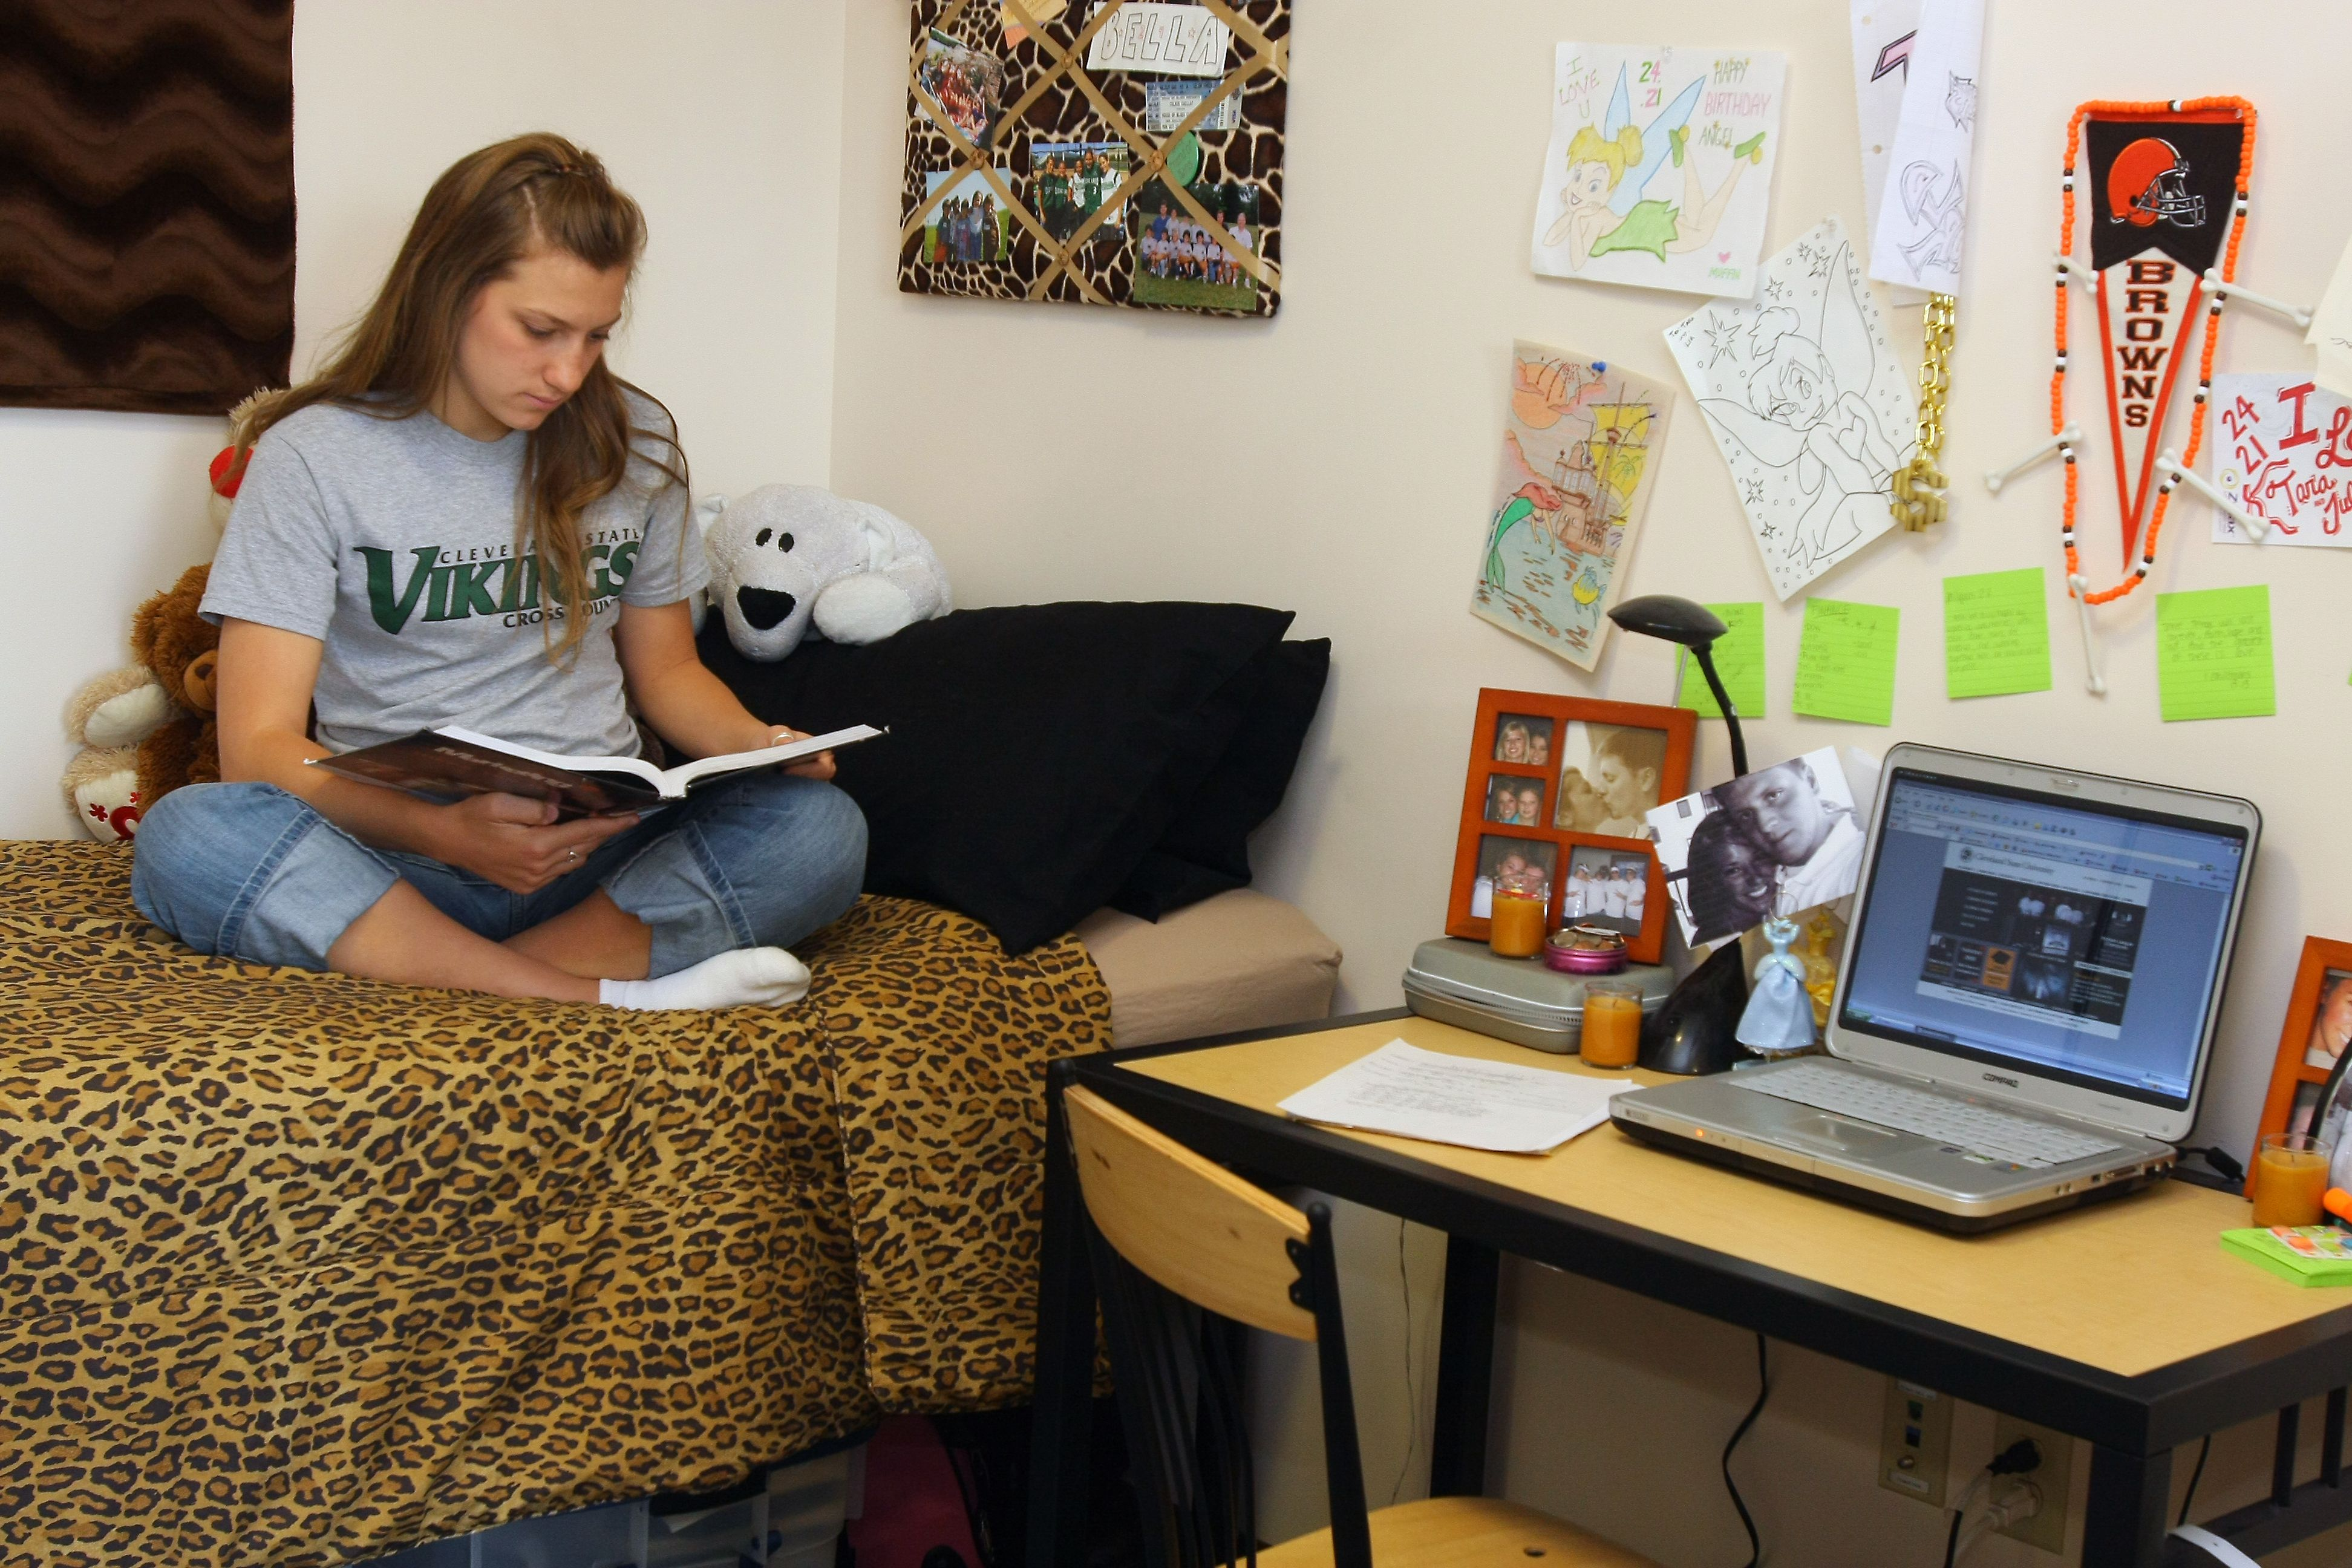 A Student At Cleveland State University Studying In Her Dorm